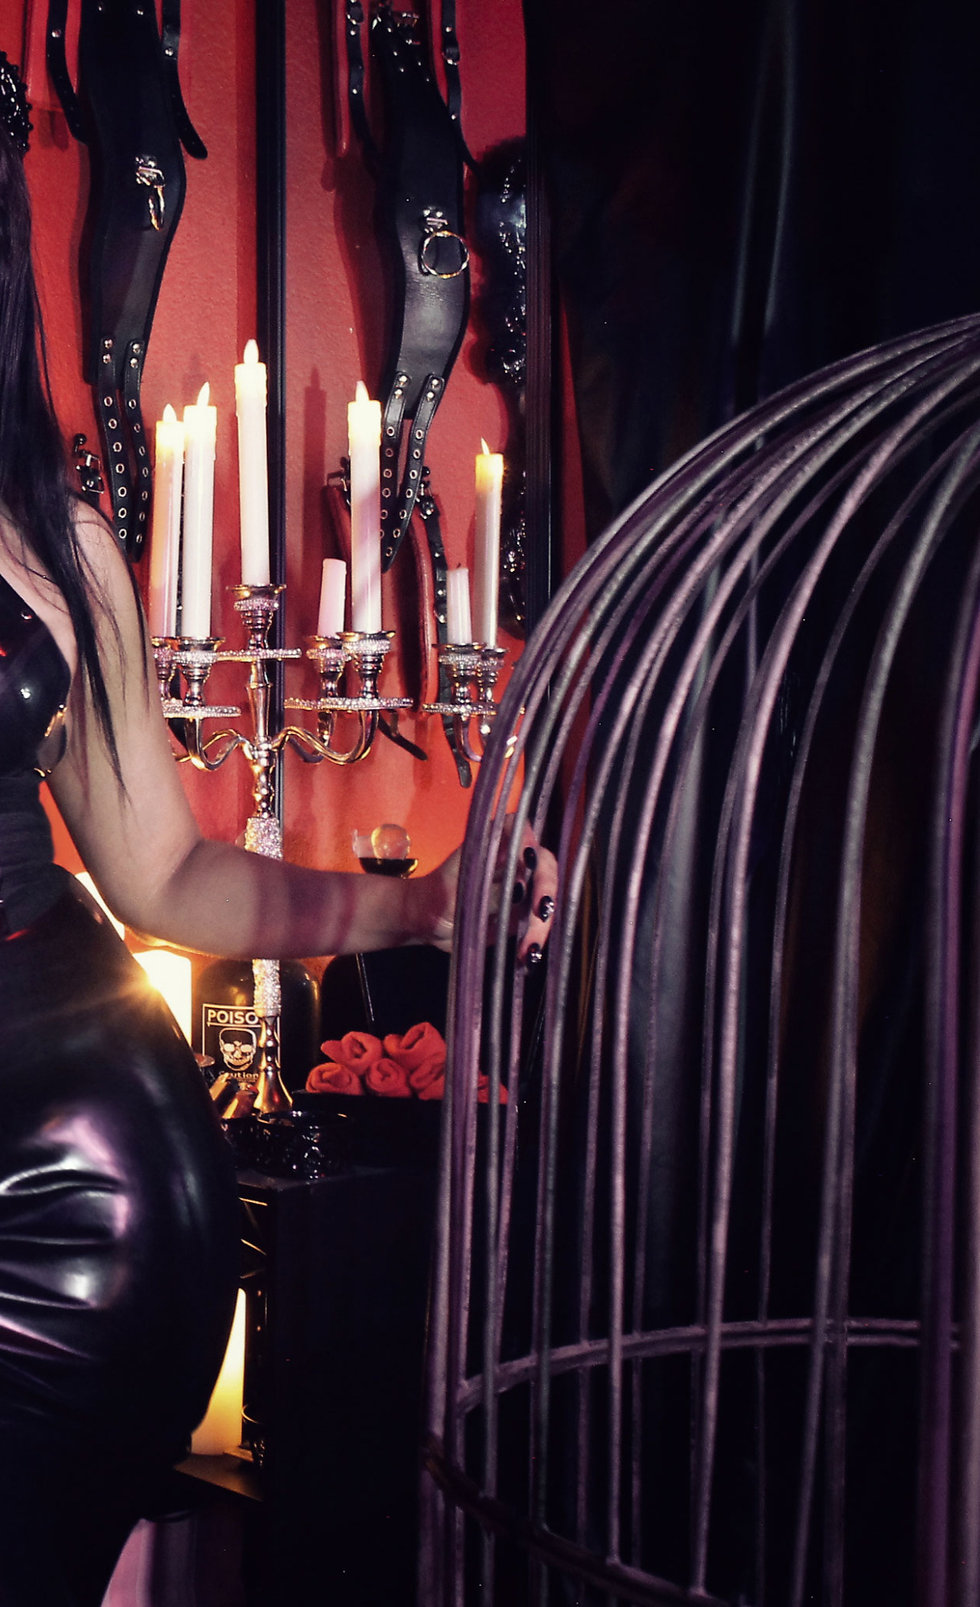 Copyrighted.  Dungeon Protocols.  How to Treat Your Mistress or Dominatrix and other questions related to meeting a prodomme in Austin